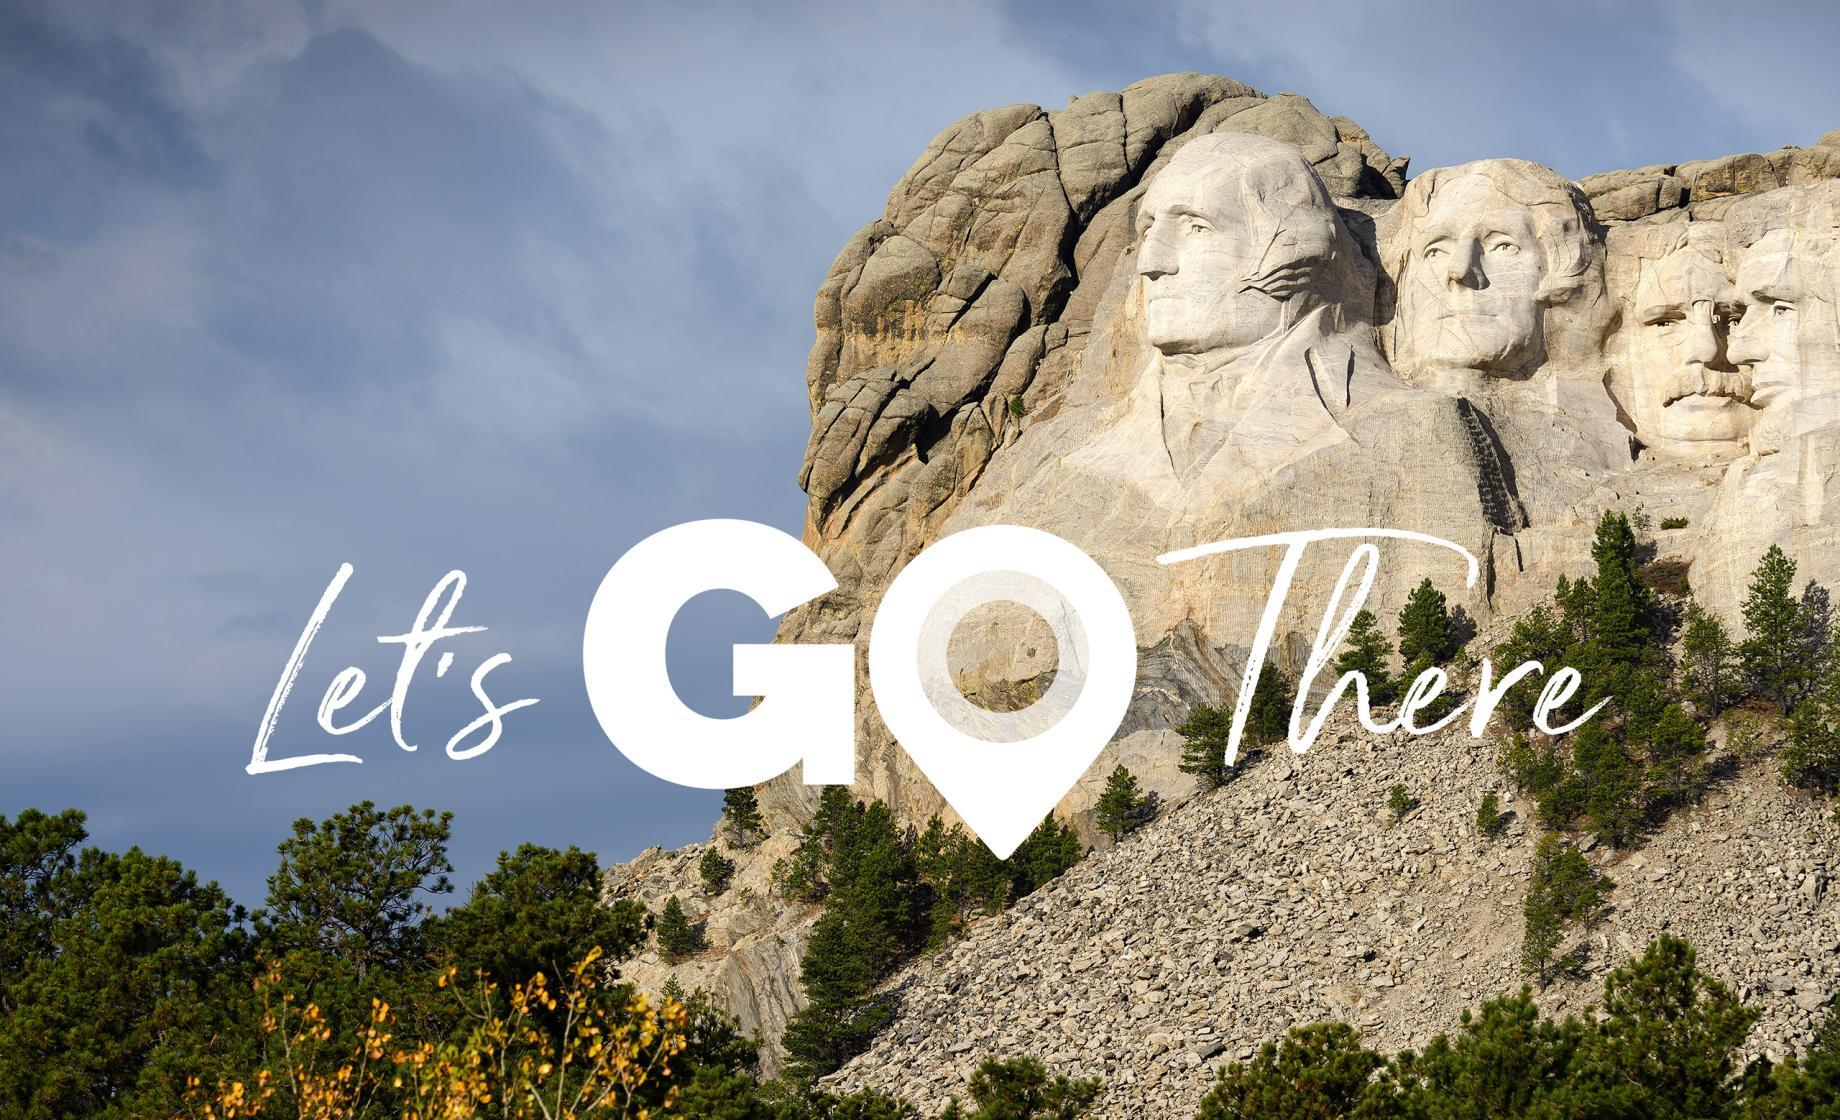 US Travel Association Let's Go There Campaign Lockup Mount Rushmore